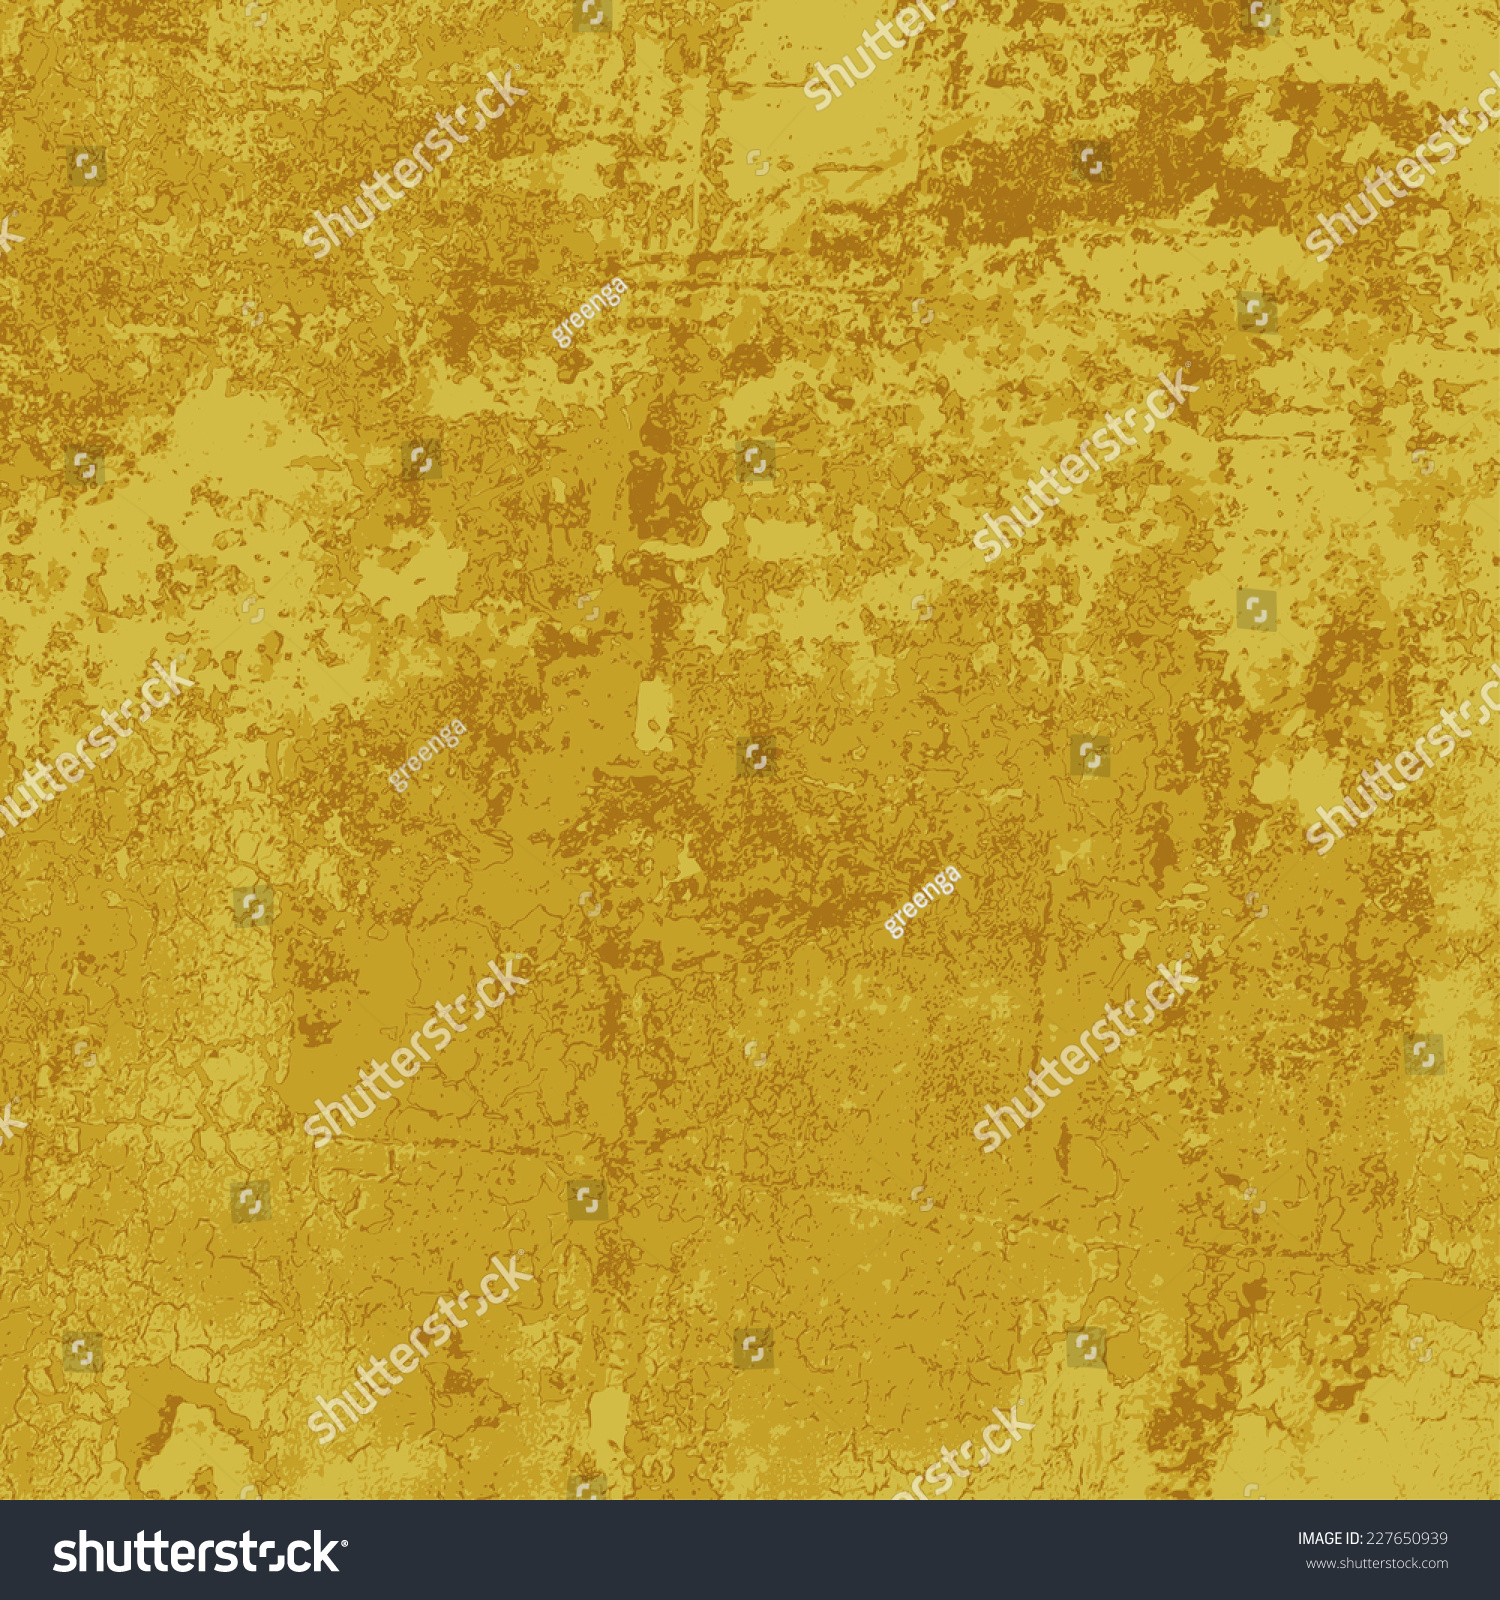 Old Gold Paint Texture Abstract Vector Stock Vector 227650939 ...